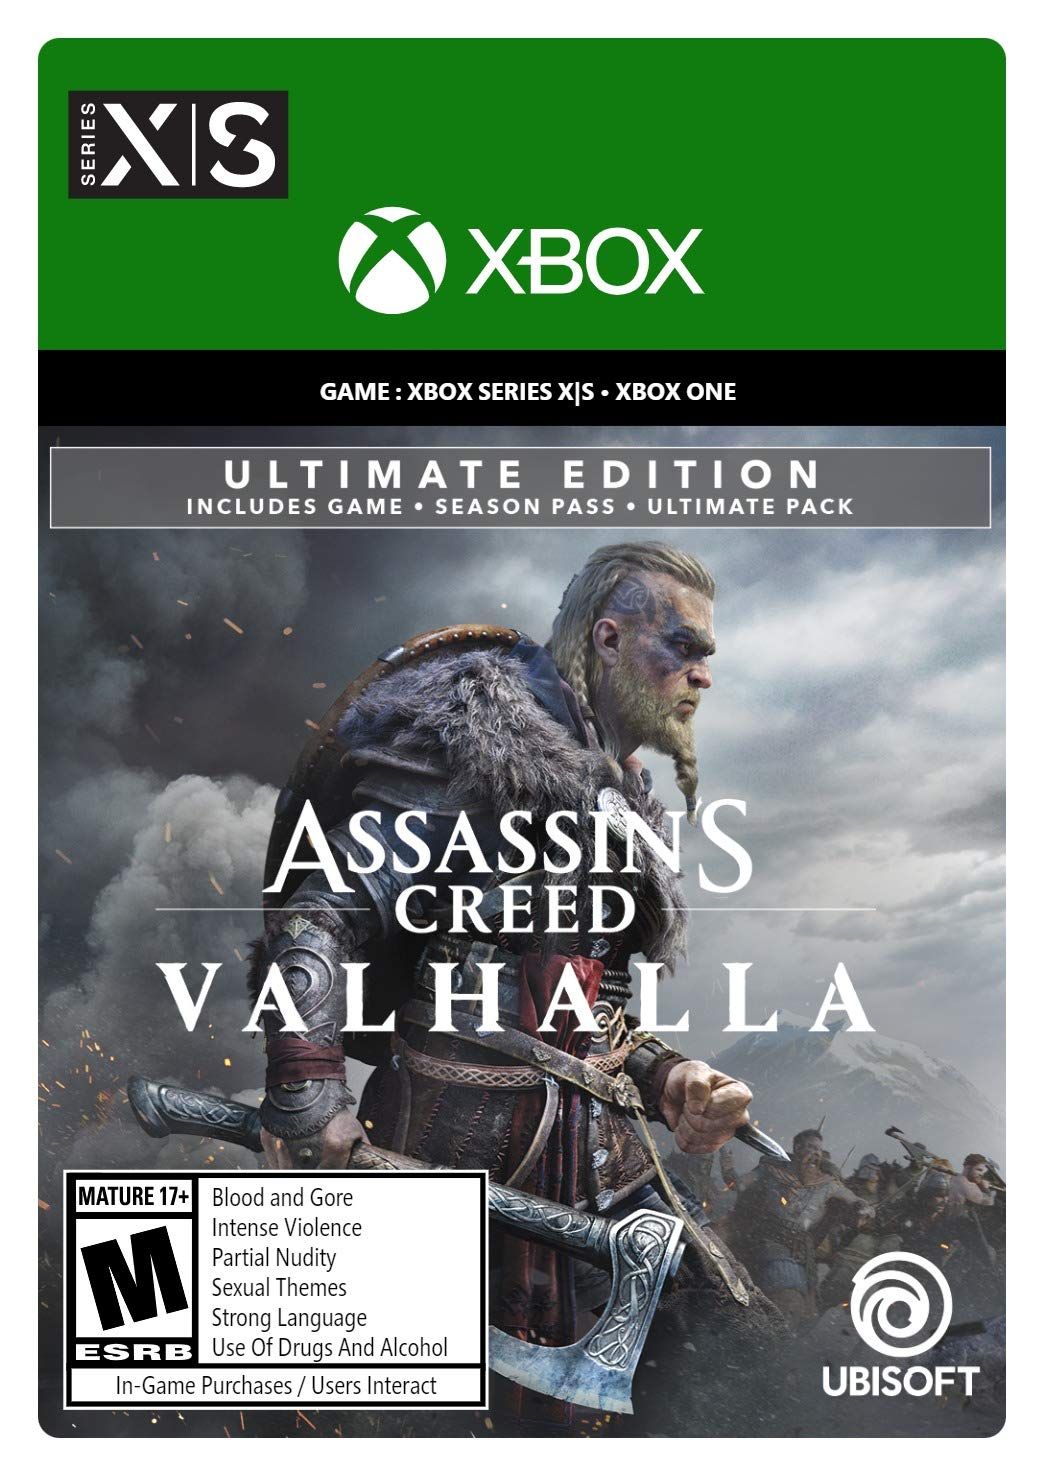 Assassin's Creed Valhalla Xbox Series X S - Pre-load, Xbox One Ultimate Edition [Digital Code]